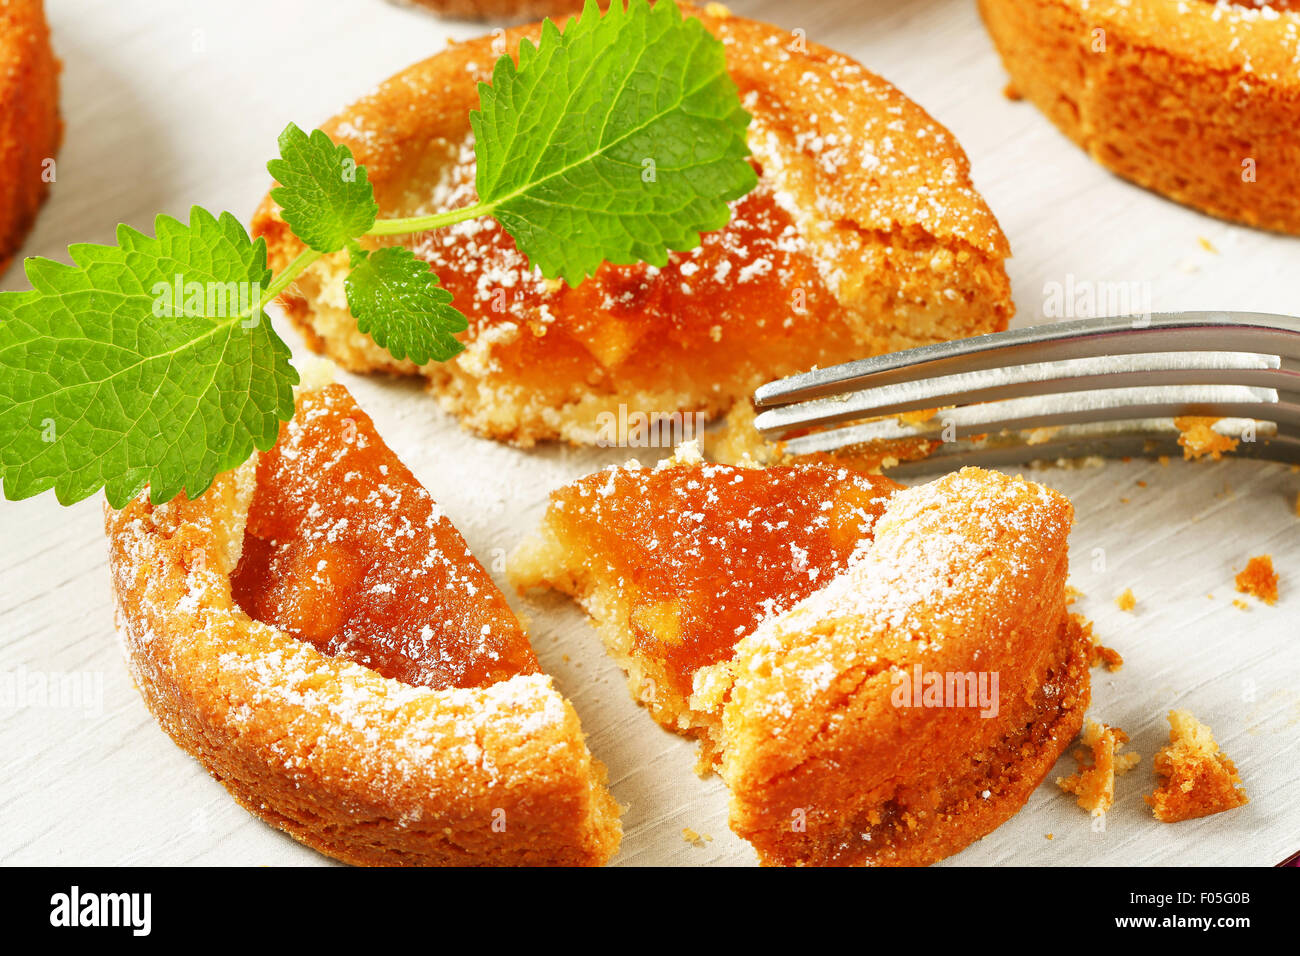 Small round cakes filled with apple puree - Stock Image